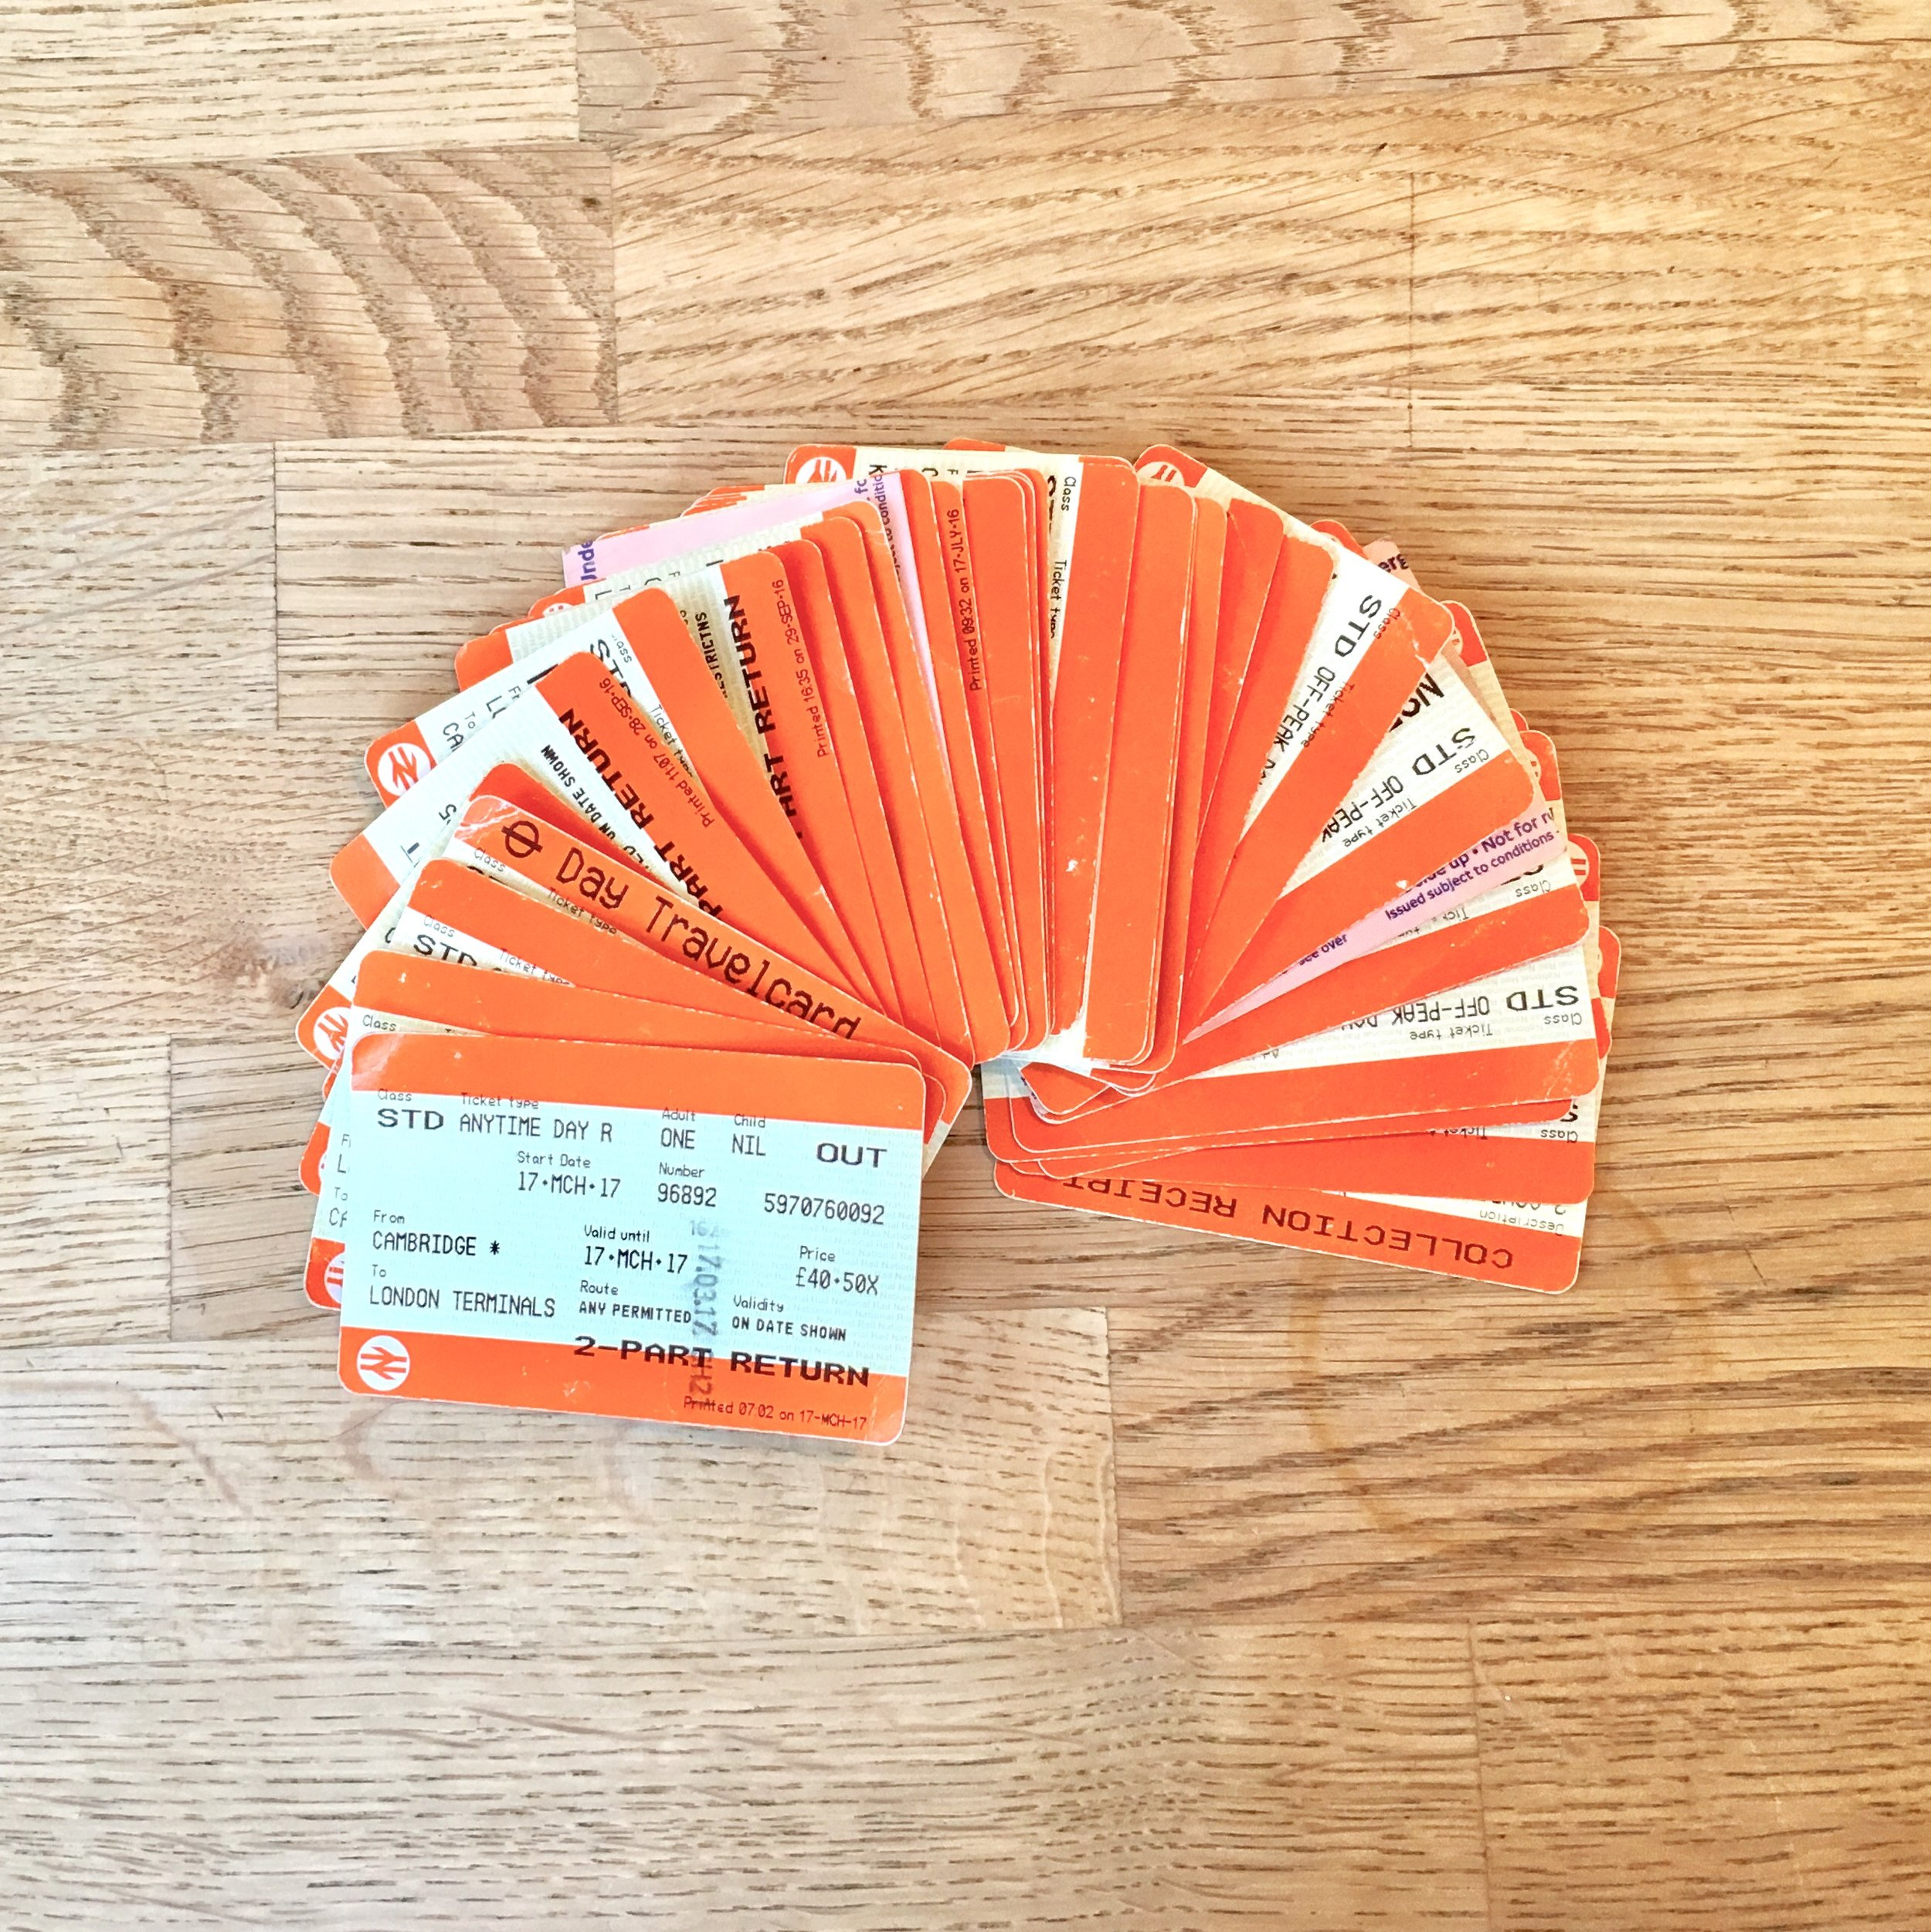 Headcase does a lot of travelling, to meet all the Important People, podcast guests and contributors we need to meet.  Just one ticket to London is £40 (I KNOW, RIGHT???!) so we're racking up the bills very fast. If you buy us our next train ticket we'll tweet a photo of us on the journey, with your name, as a thank you! We'll even wave :)